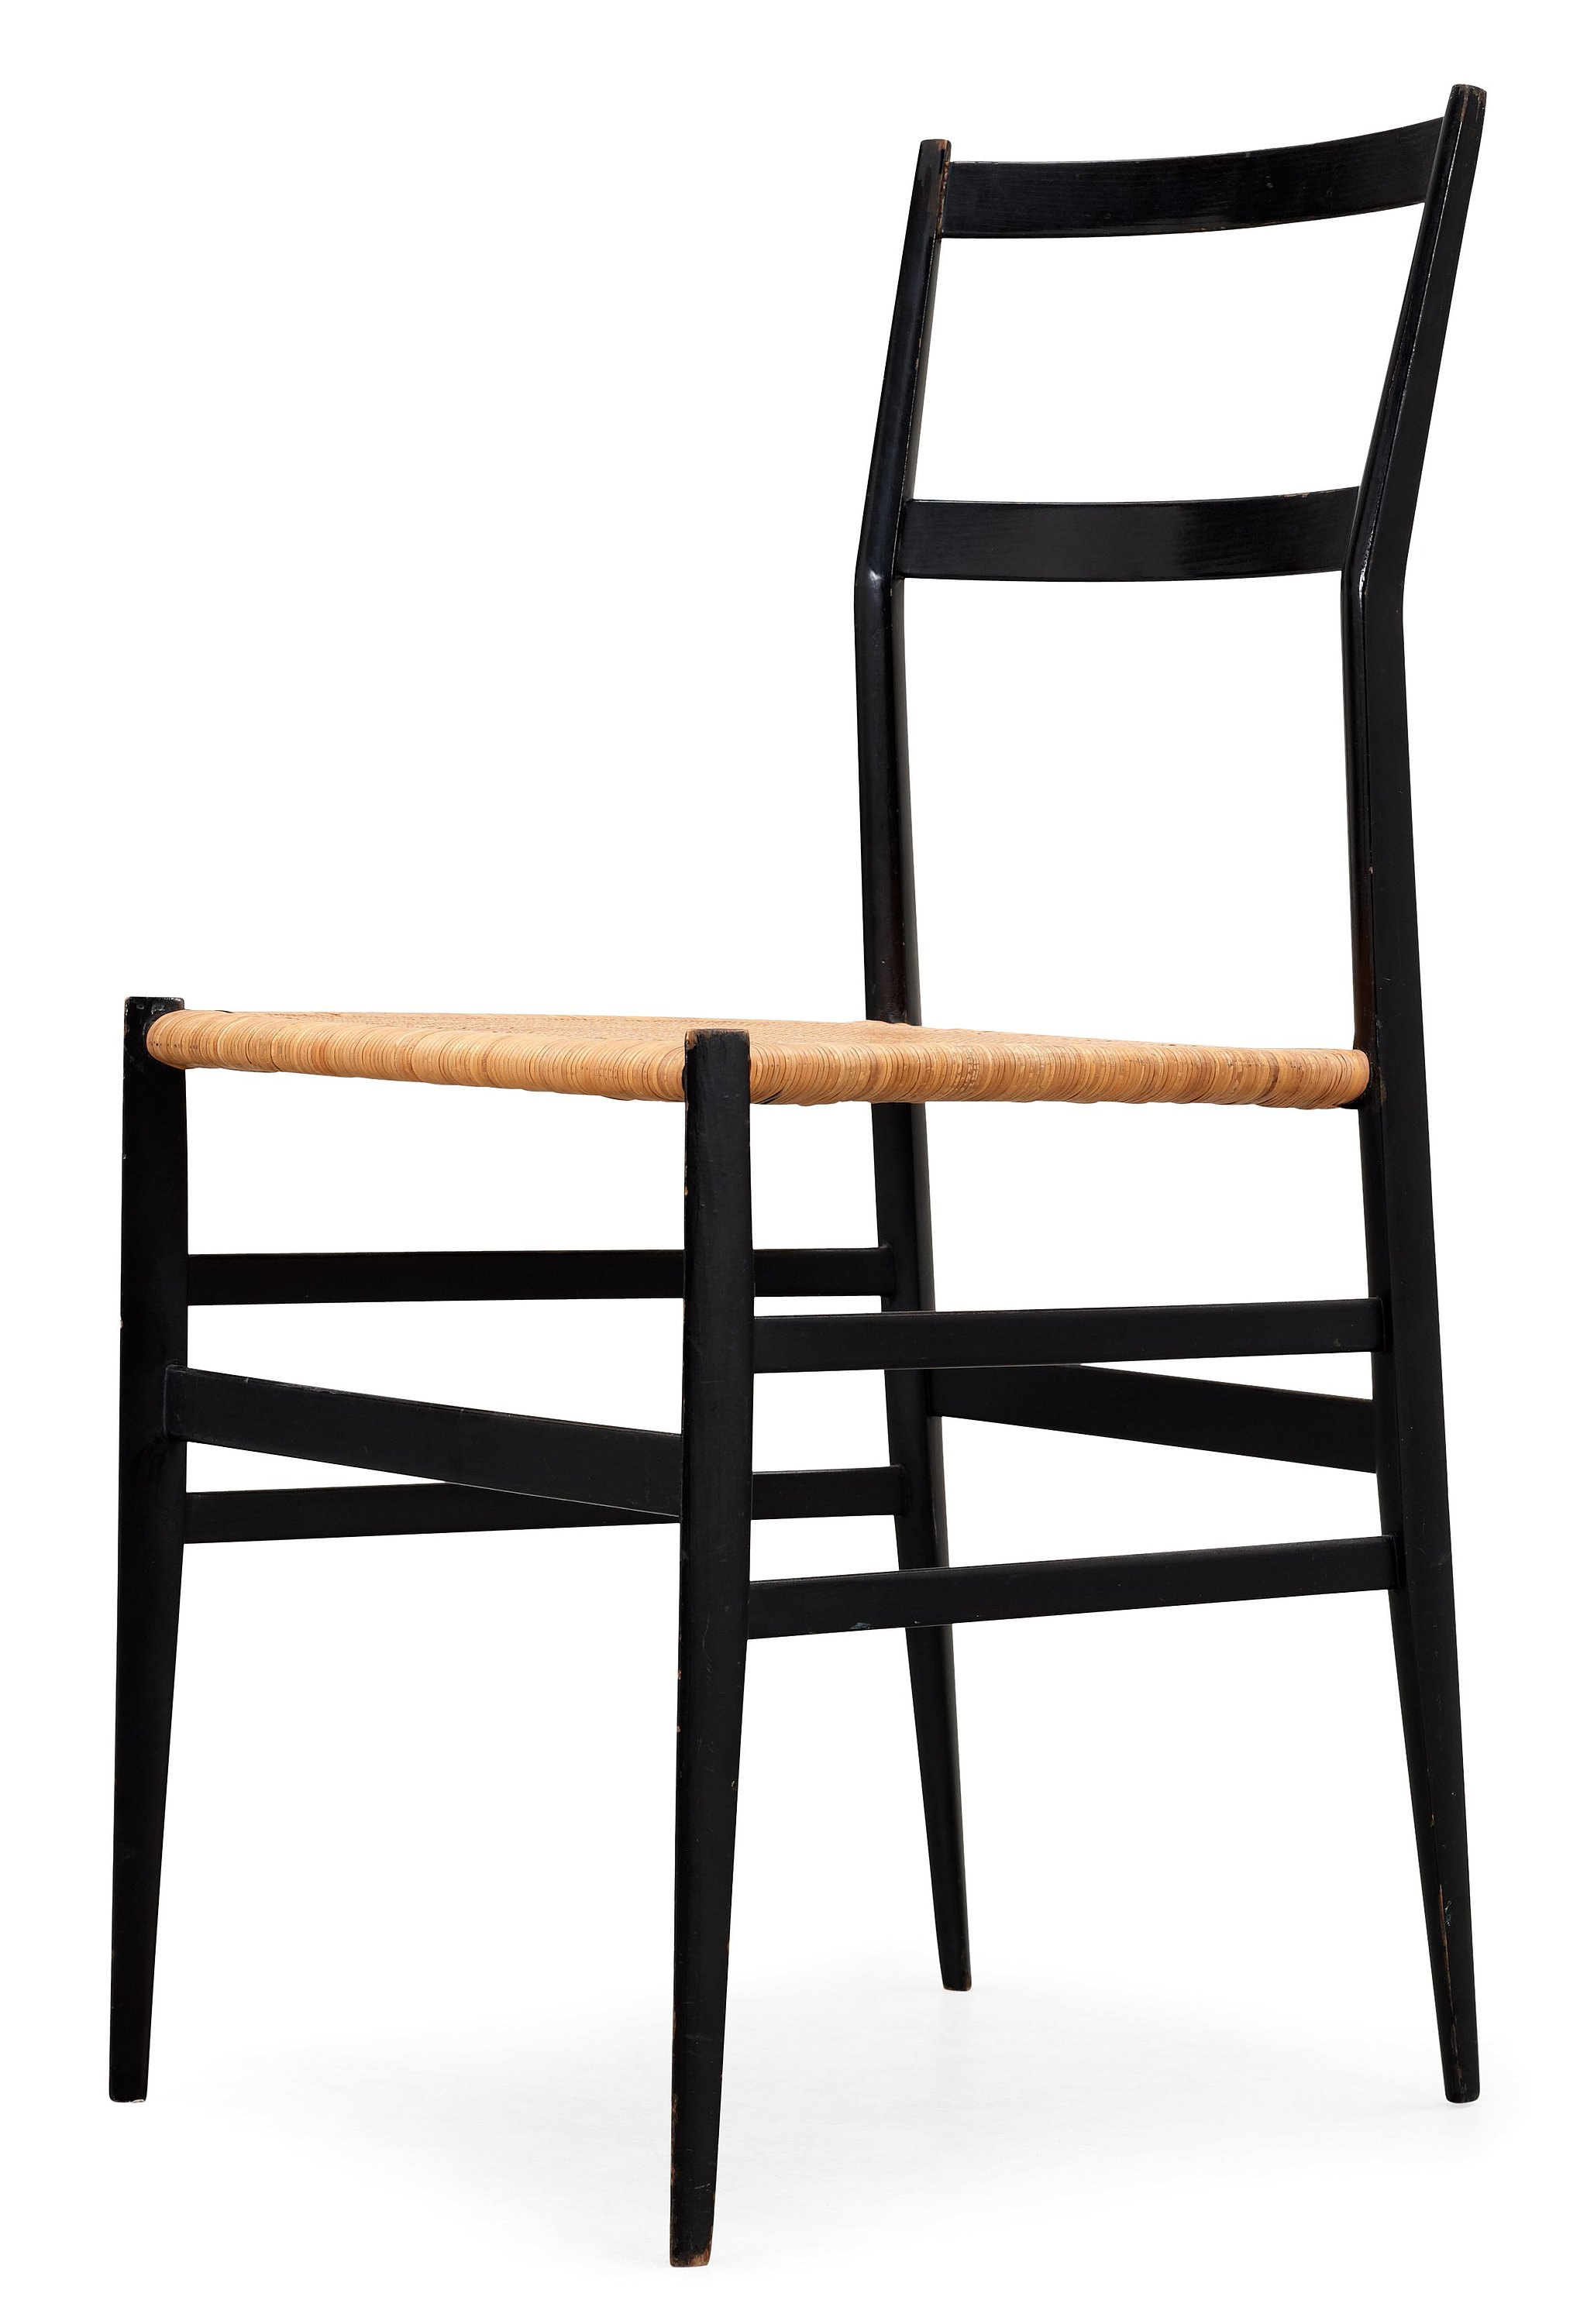 A Gio Ponti 'Superleggera' chair, Cassina, Italy, black painted ash with ratten seat.